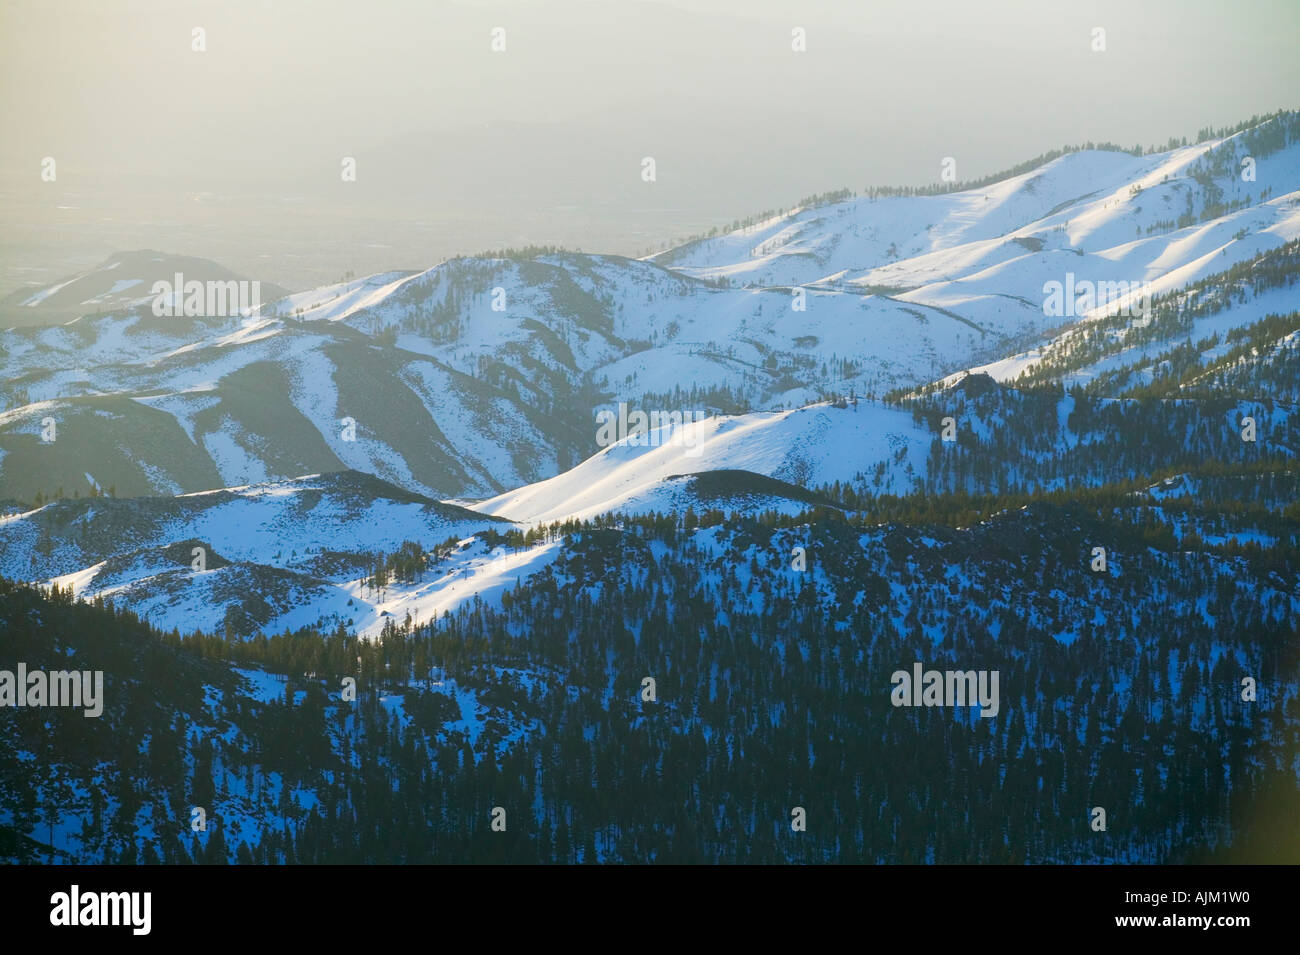 A view of Lake Tahoe NV from the top of Diamond Peak - Stock Image